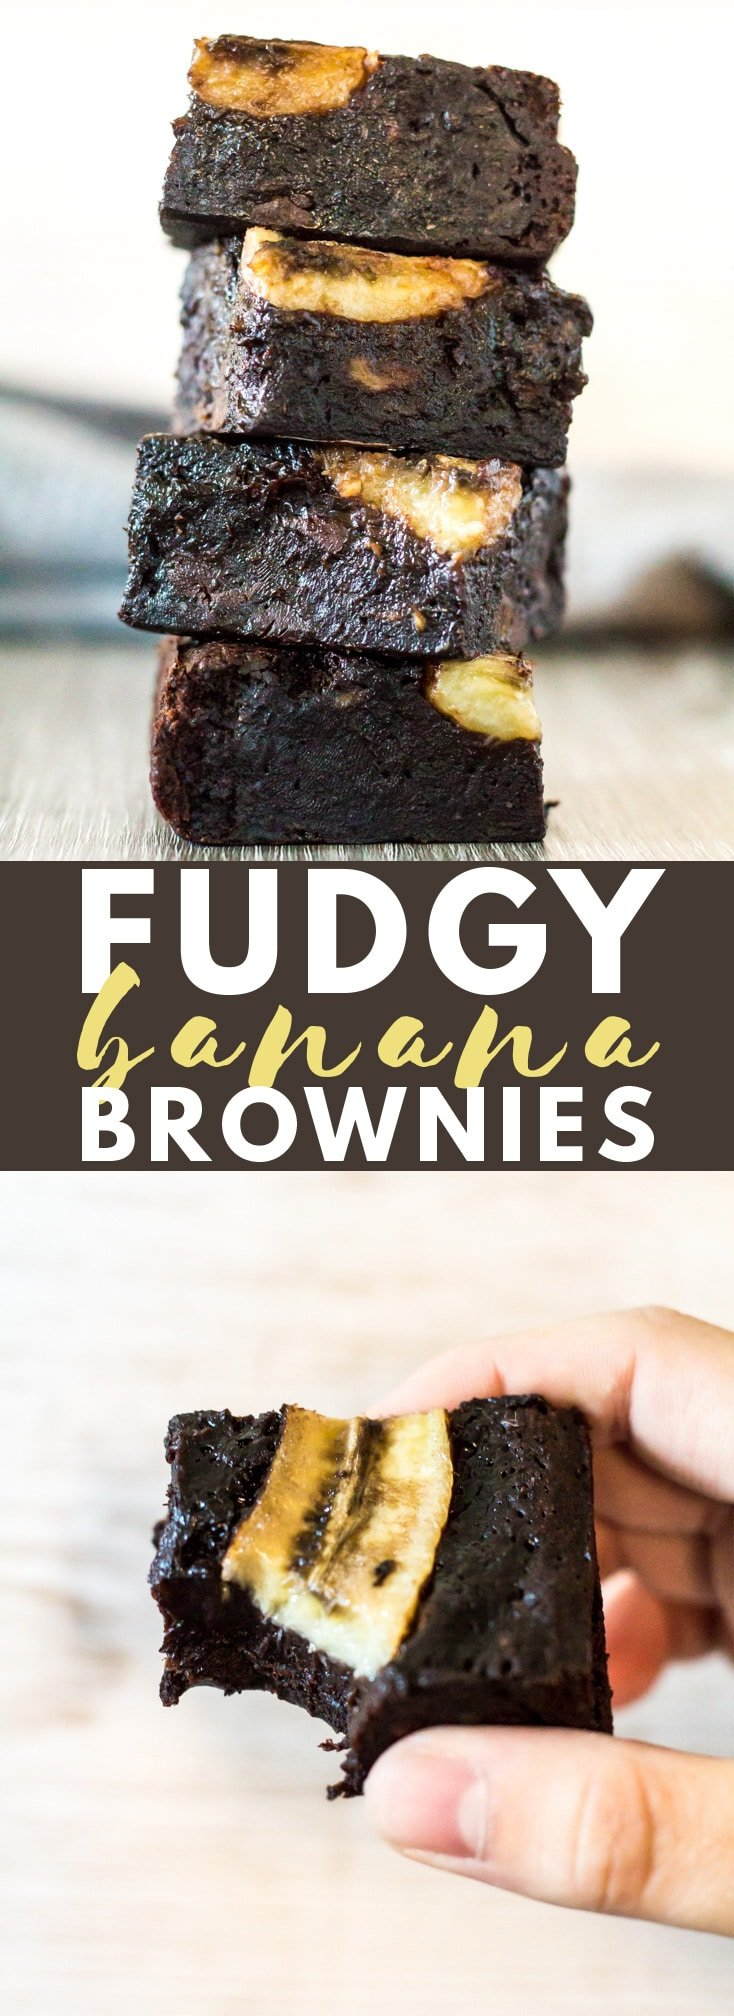 Fudgy Banana Brownies - These brownies are incredibly thick, fudgy, and loaded with banana flavour. Banana lovers will LOVE these! #banana #brownies #chocolate #recipe